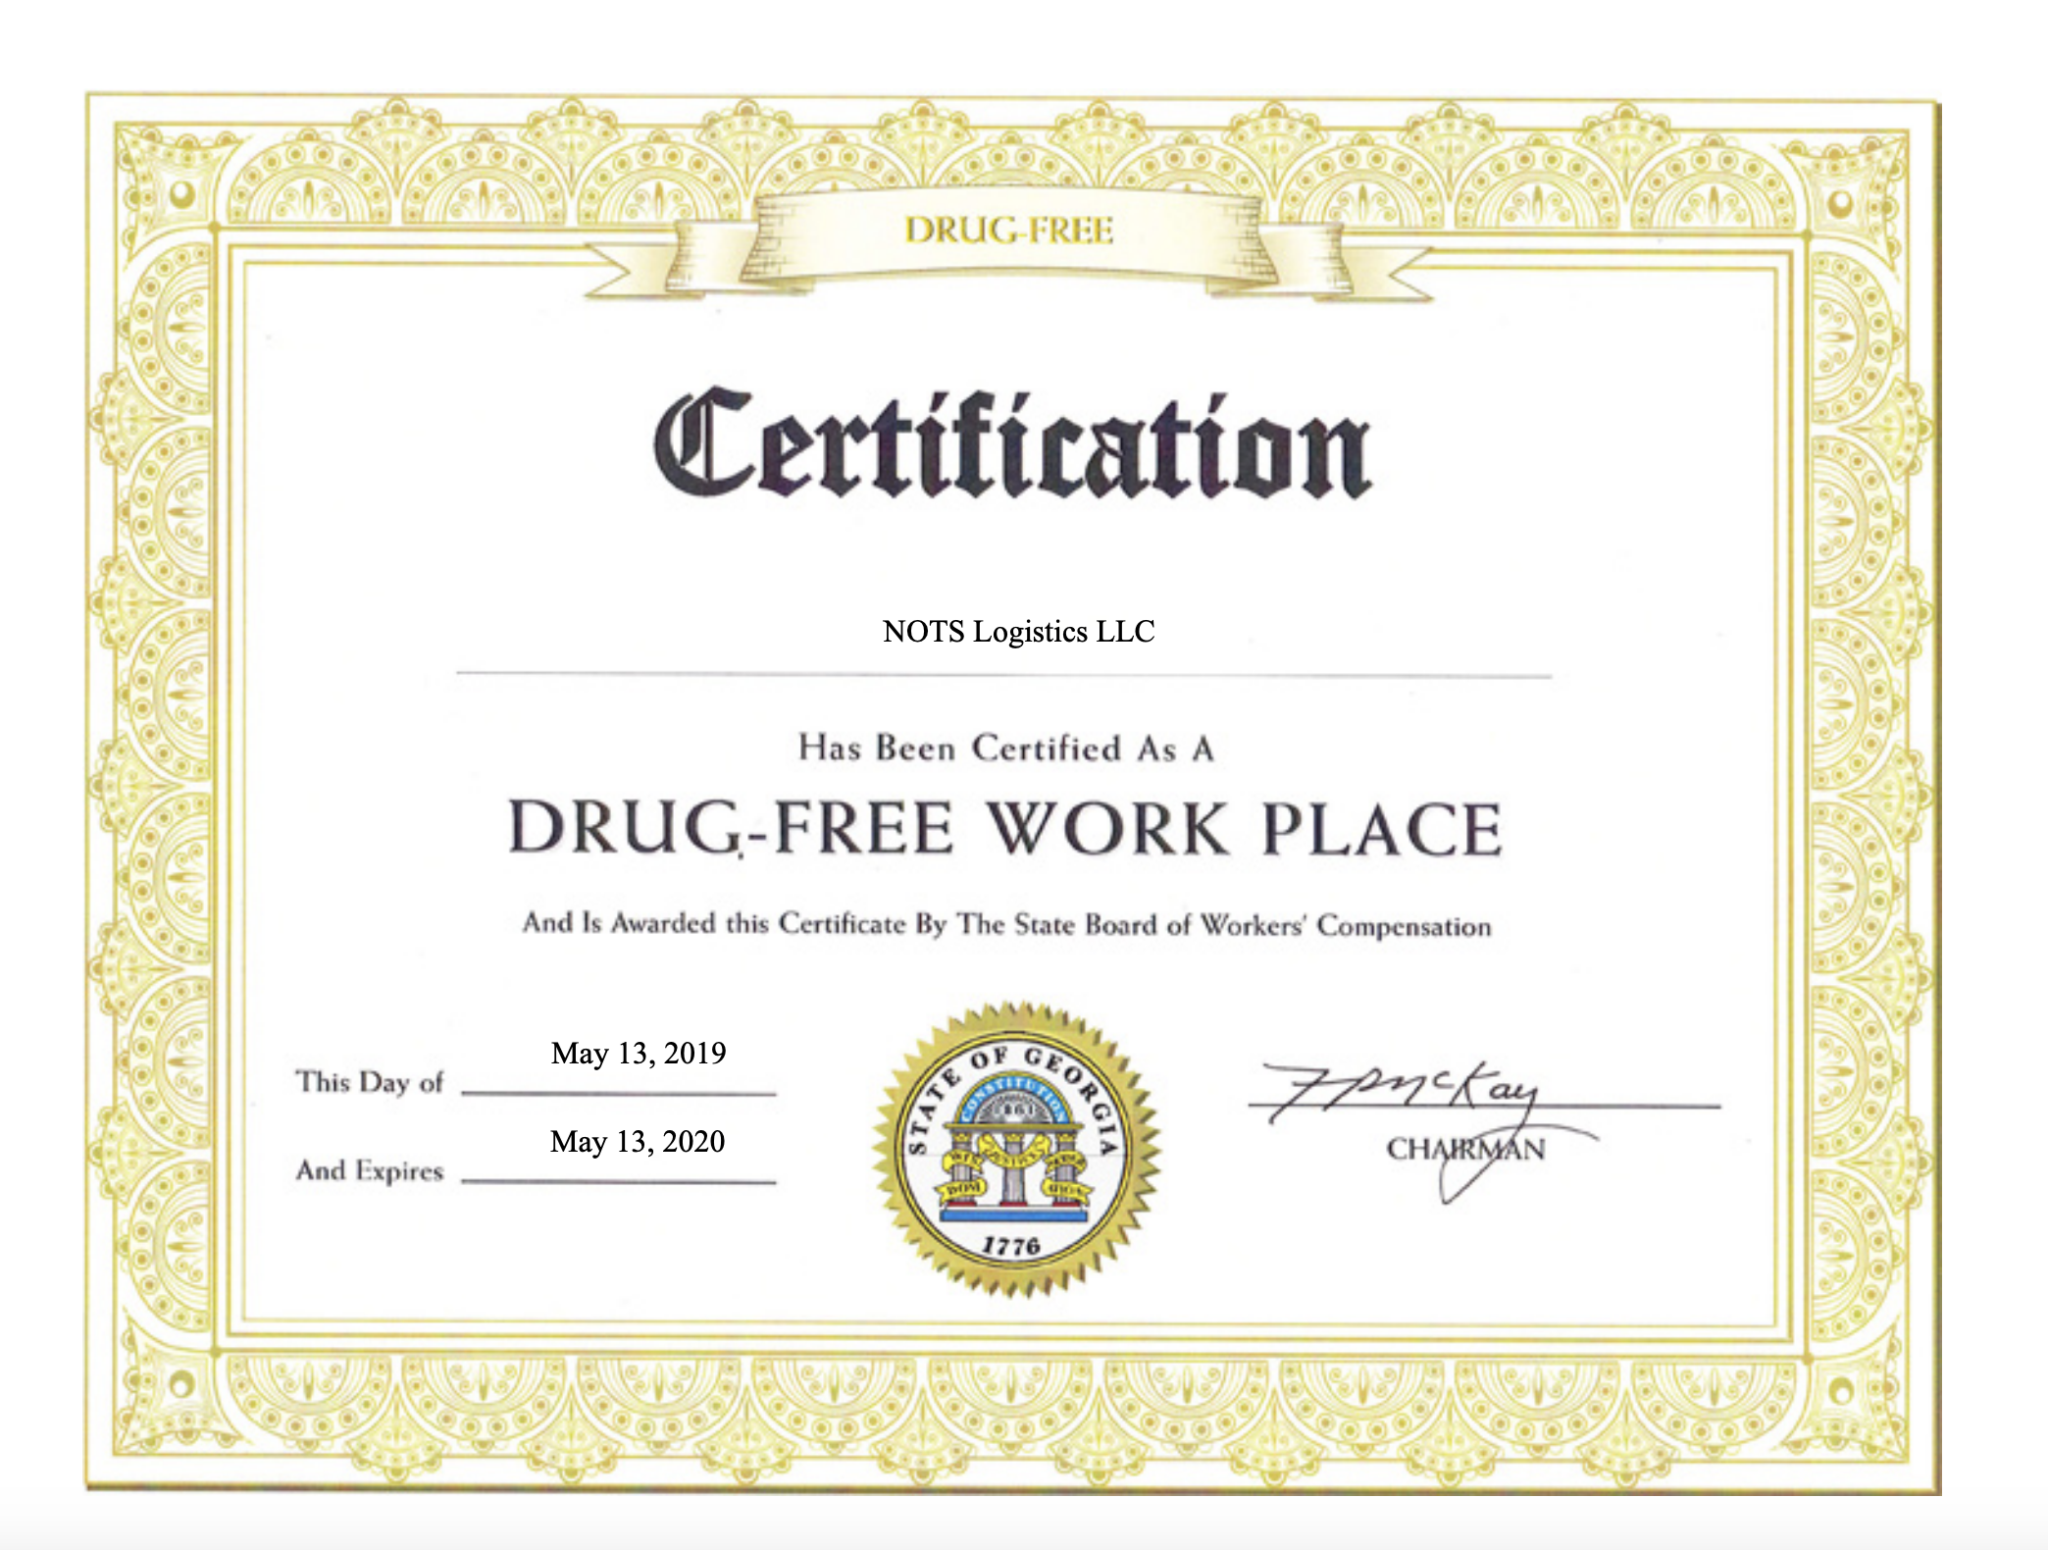 NOTS Logistics Receives Certification for Drug-Free Work Place